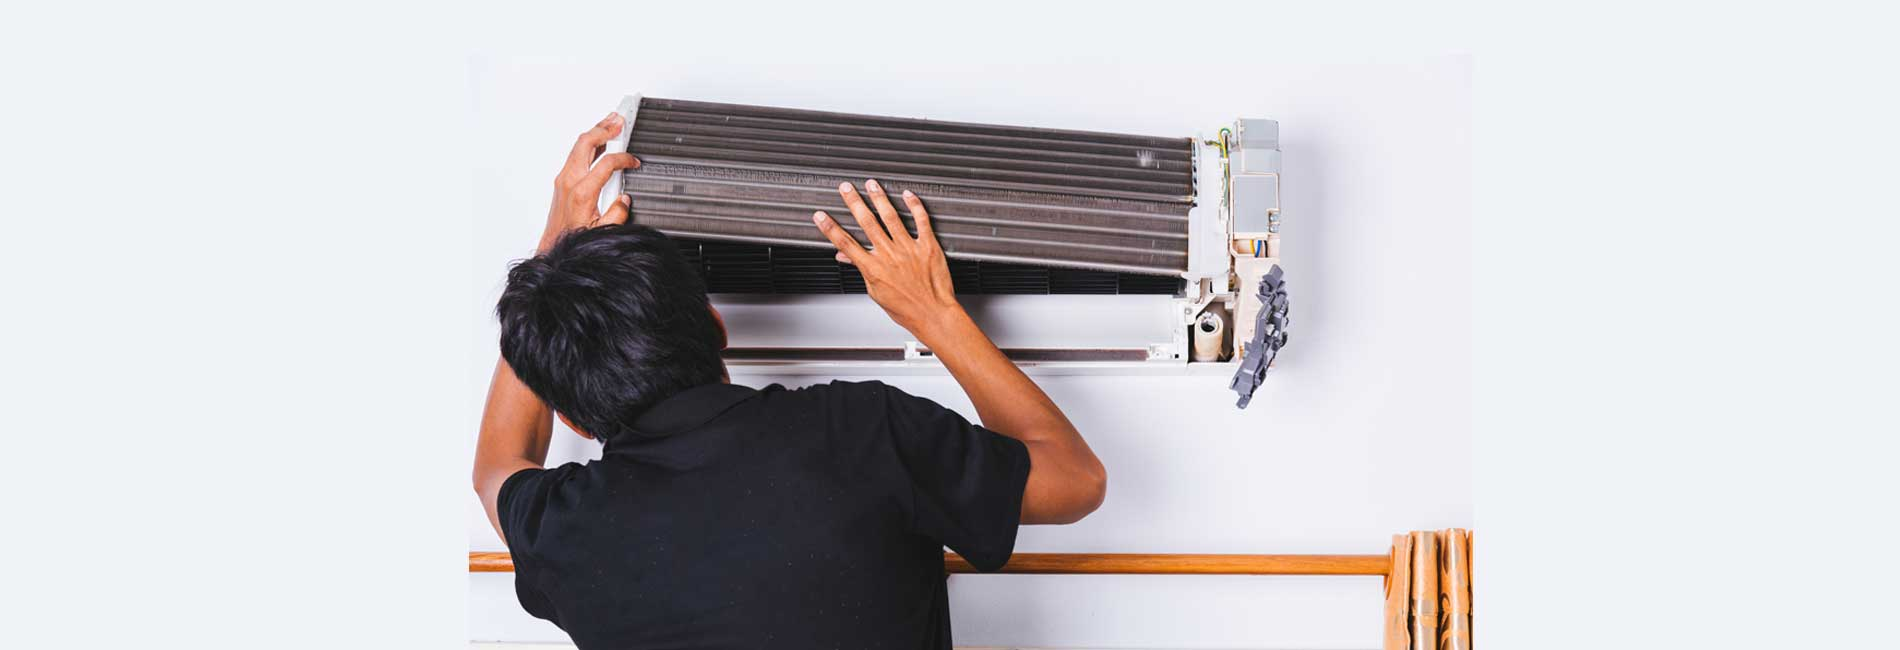 Air Conditioner Repair in Kilpauk